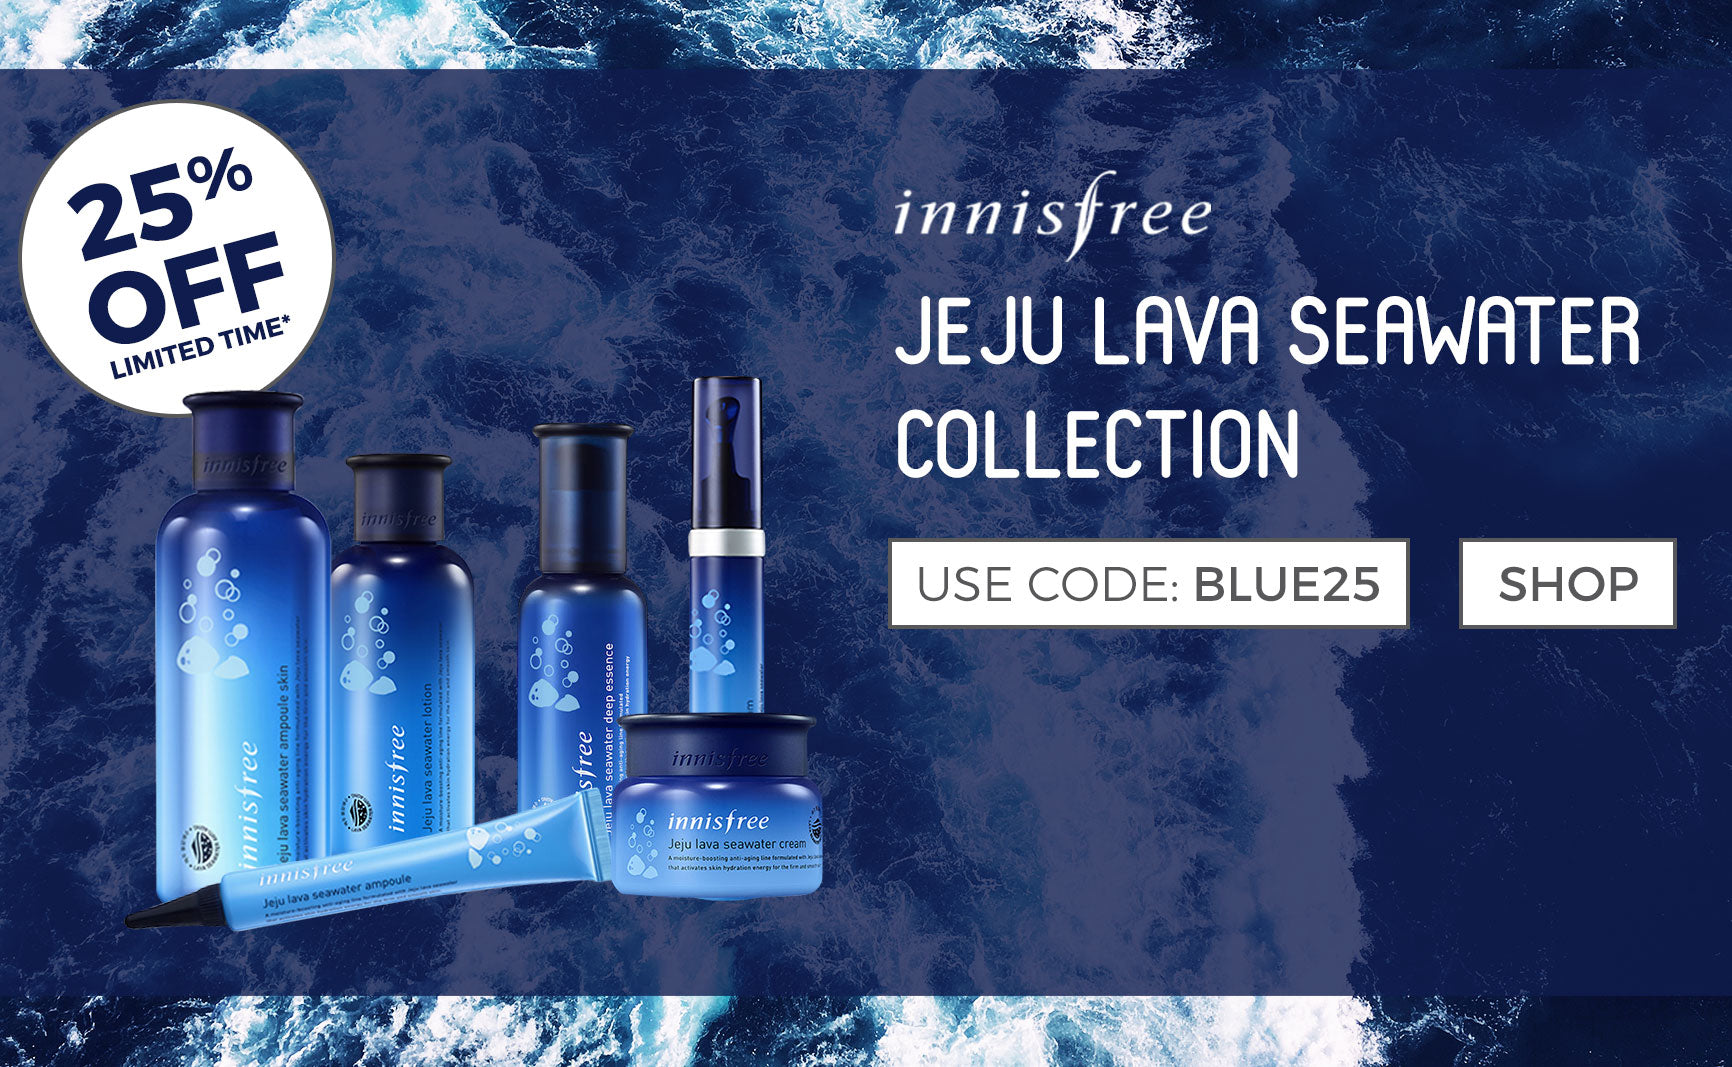 Jeju Lava Seawater Collection